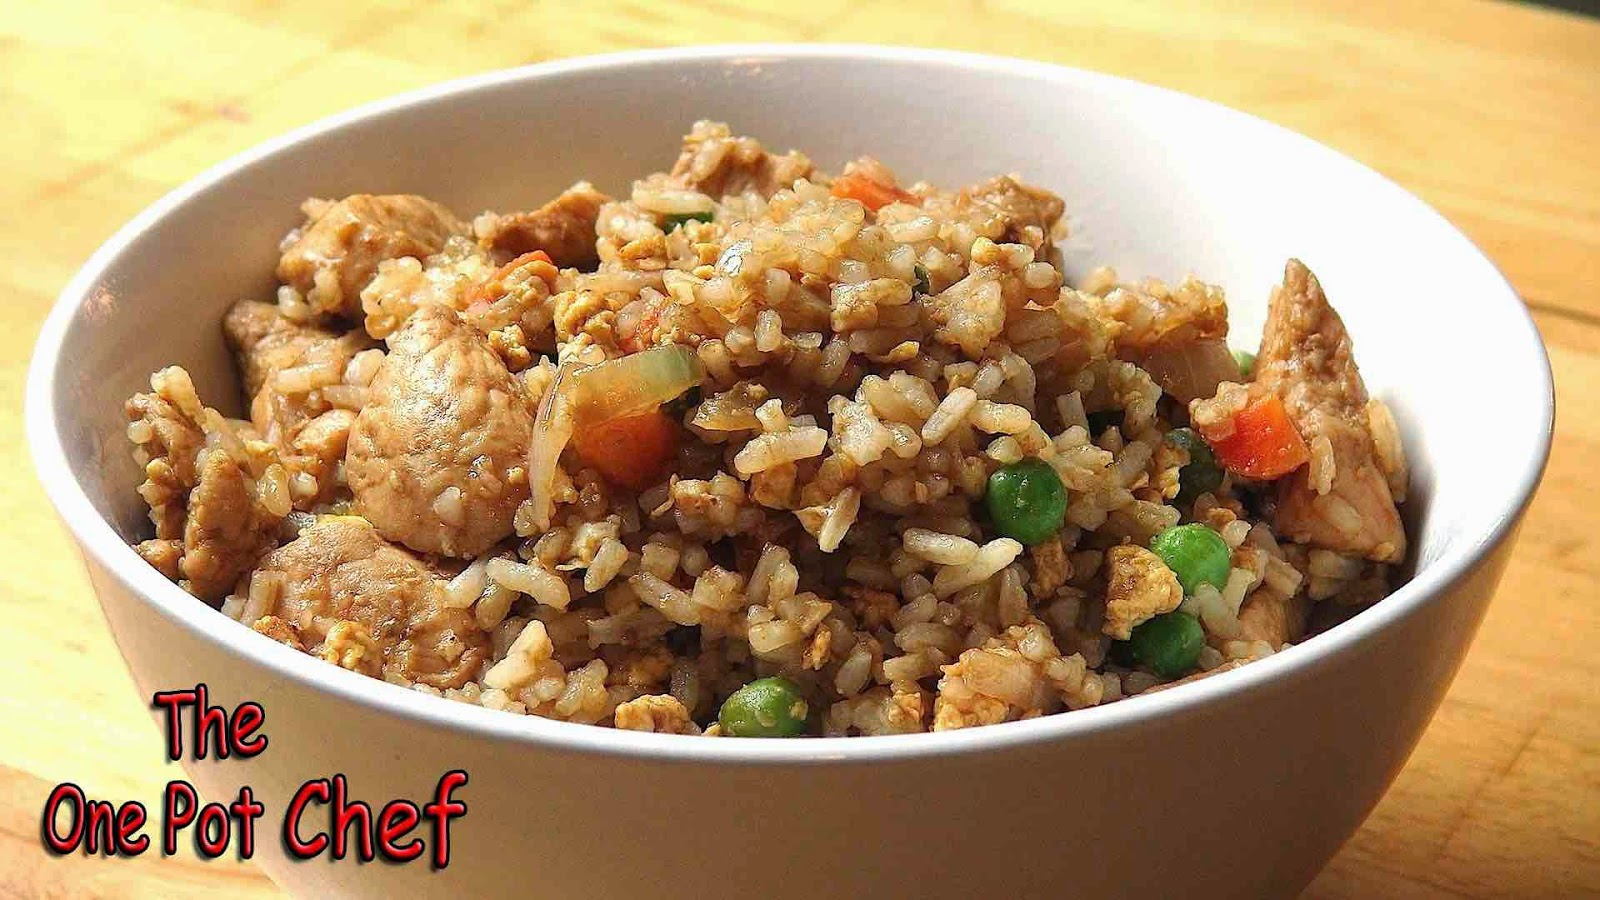 The One Pot Chef Show: Super Fast Chicken Fried Rice - RECIPE